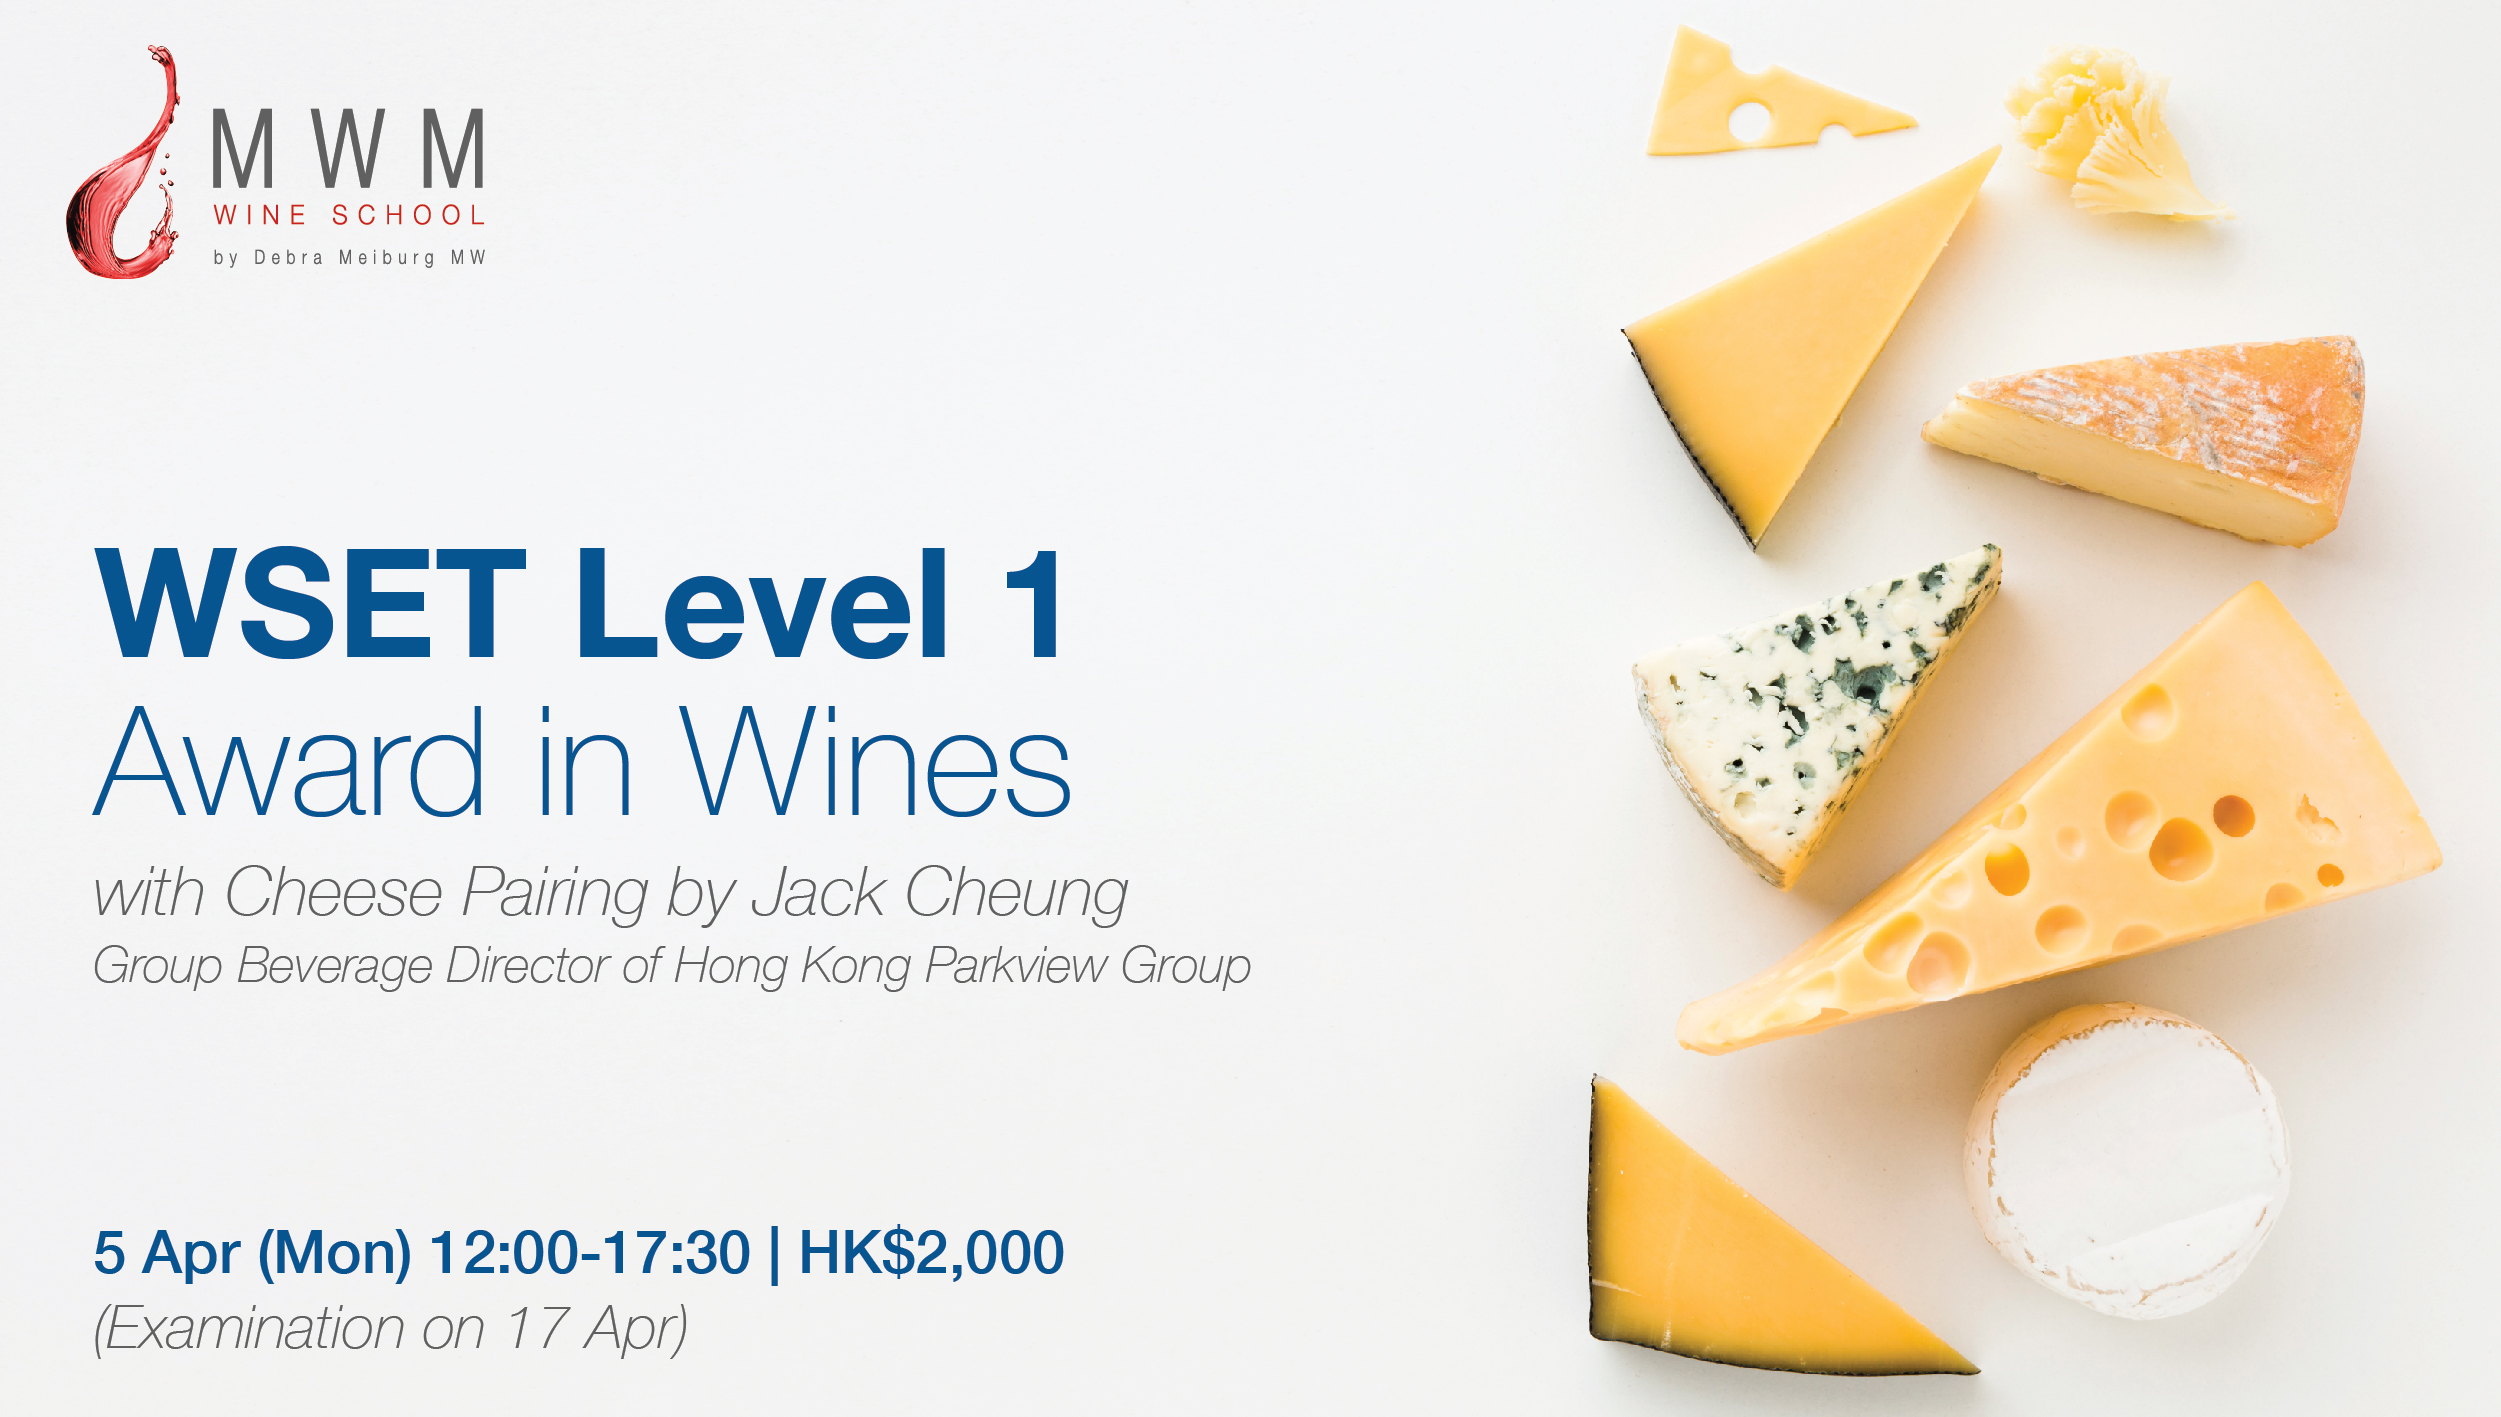 WSET Level 1 Award in Wines with Cheese Pairing